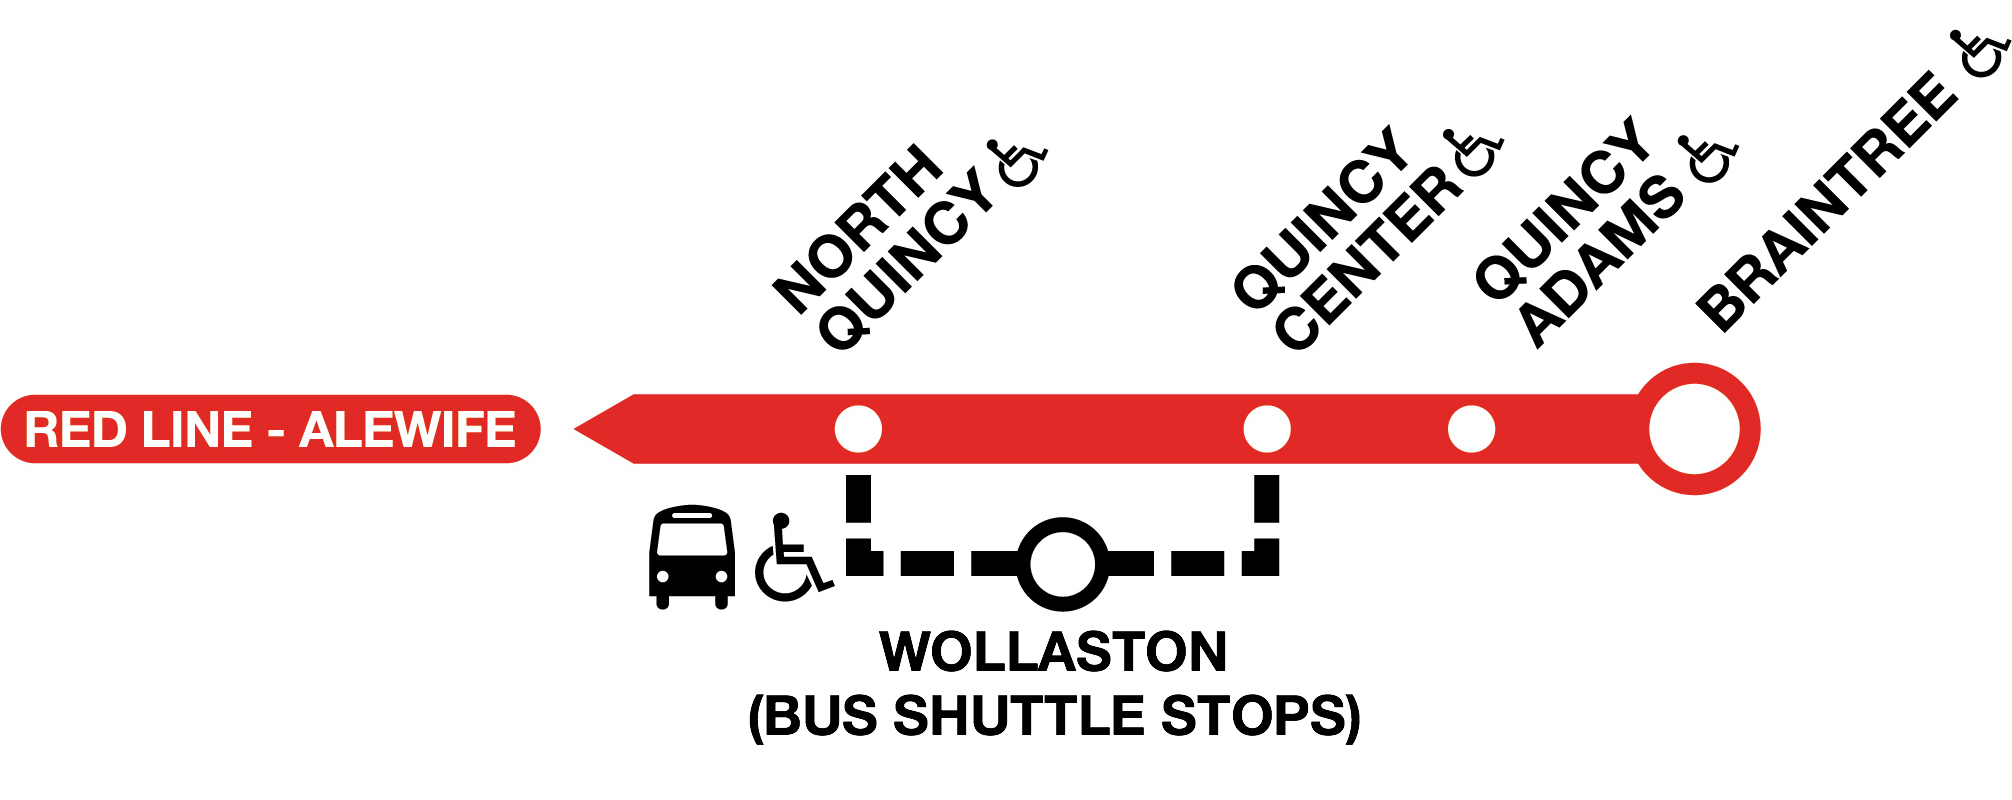 Diversion graphic showing the Red Line, with Wollaston omitted and shown along black dotted line underneath the Red Line, signifying bus shuttles running from North Quincy and Quincy Center Stations, stopping at Wollaston.